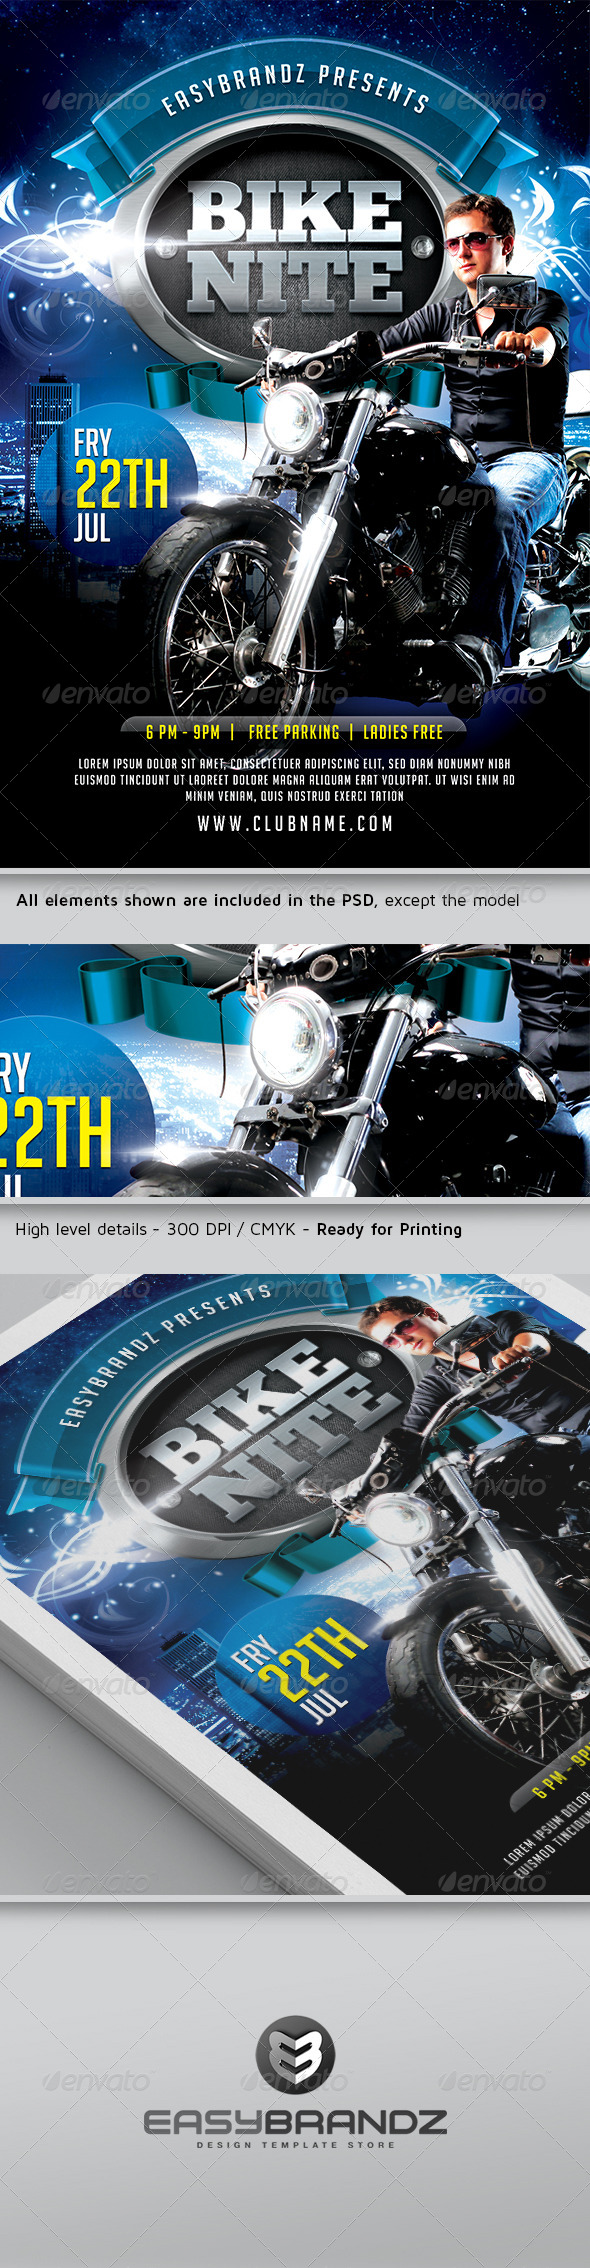 Car And Bike Show Flyer Template Save Our Oceans - Car and bike show flyer template